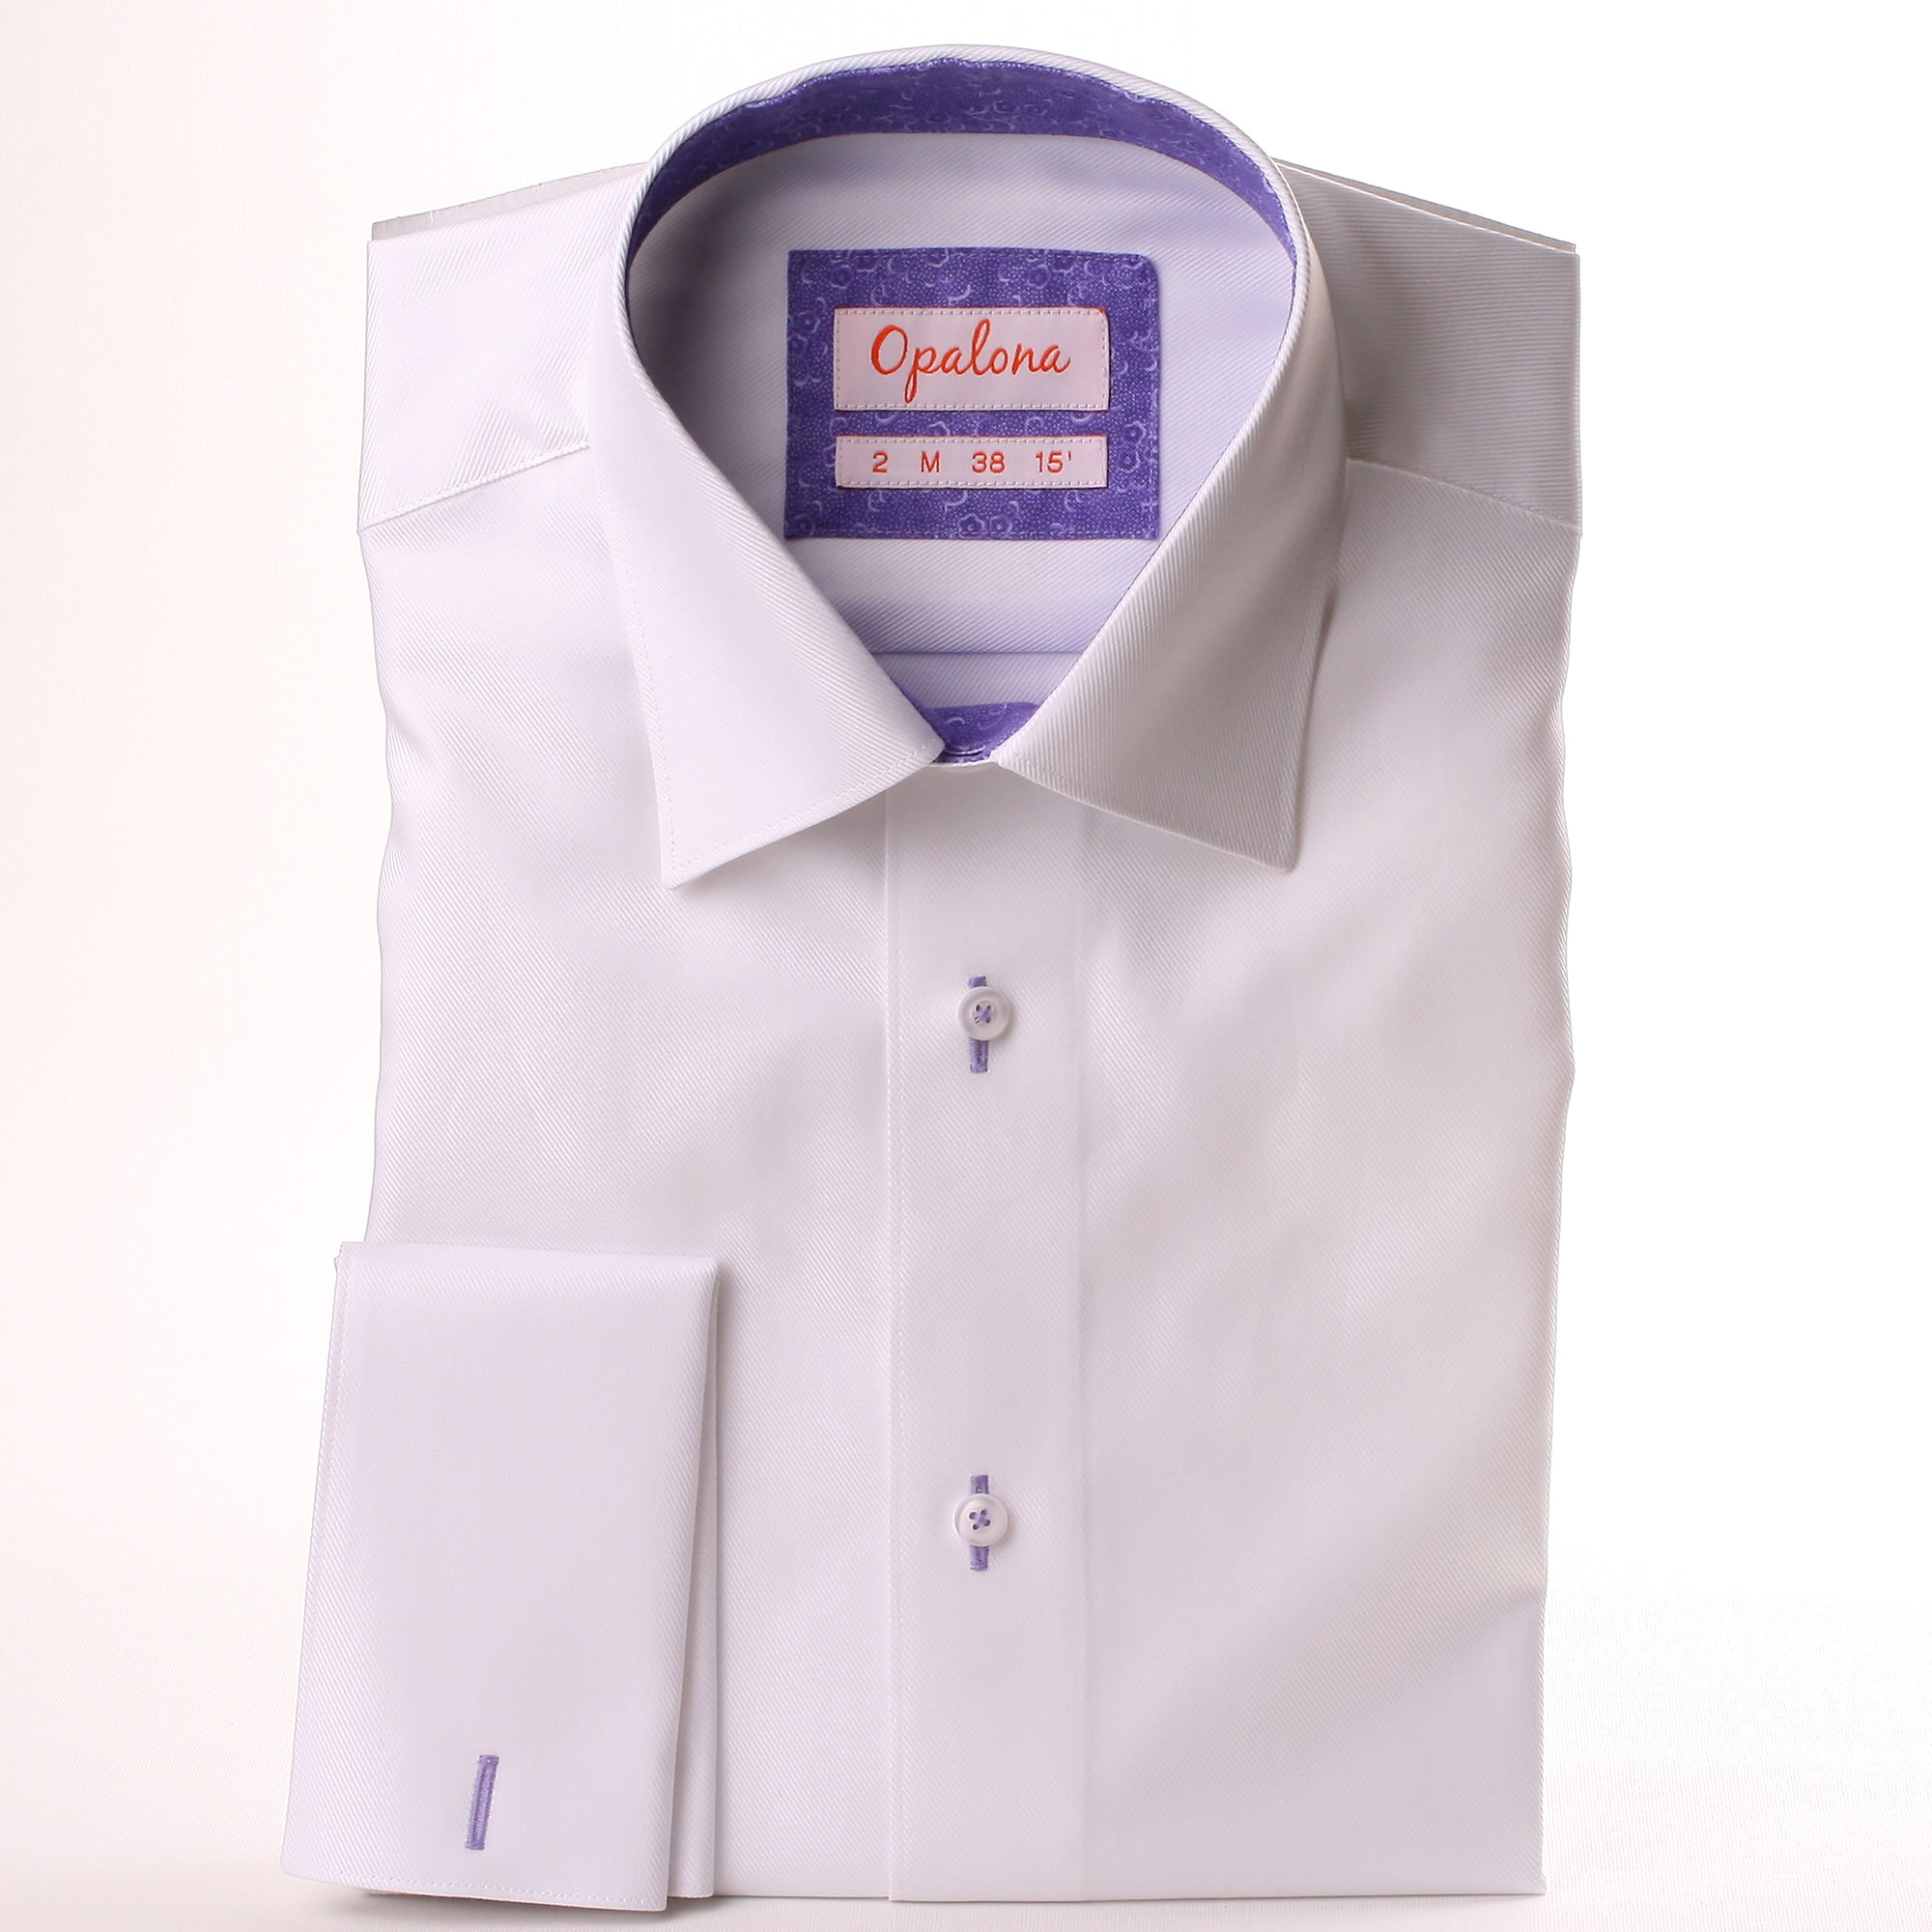 White French Cuff Shirt With A Purple Floral Collar